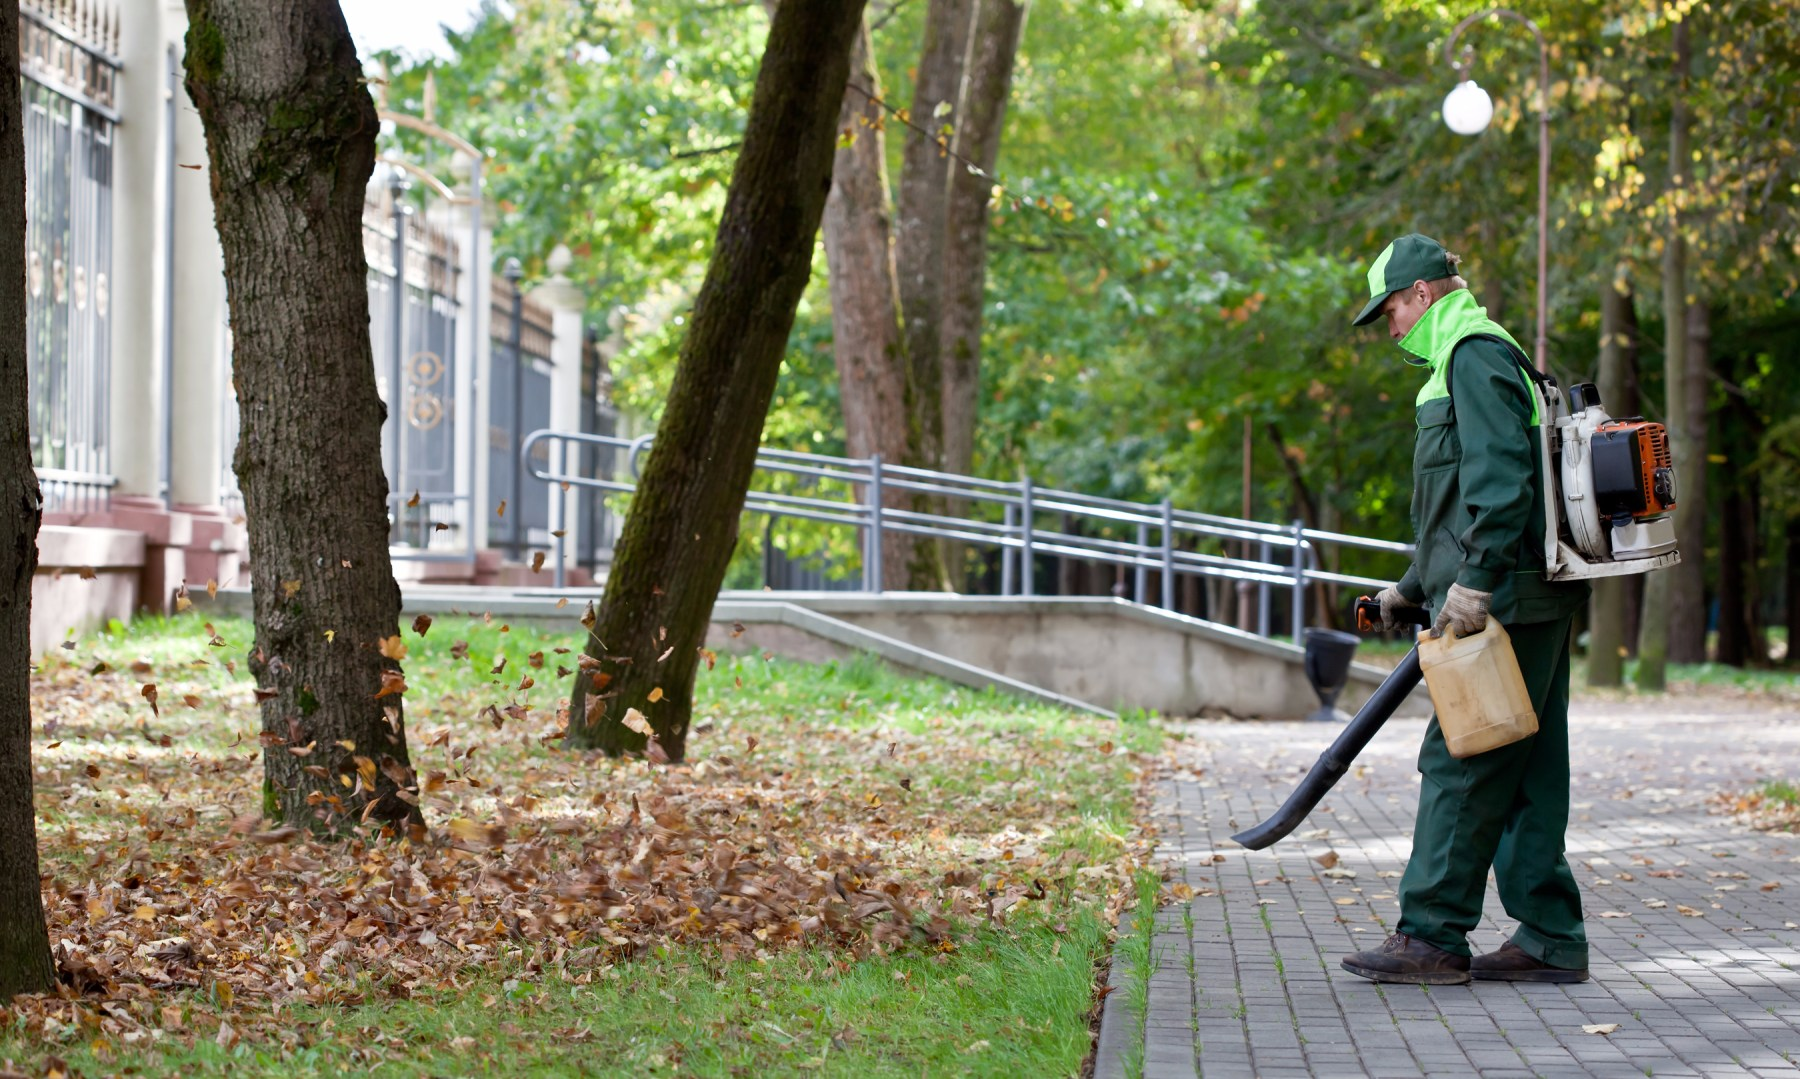 It's Time to Let Your Audience Know About Fall Lawn & Landscaping